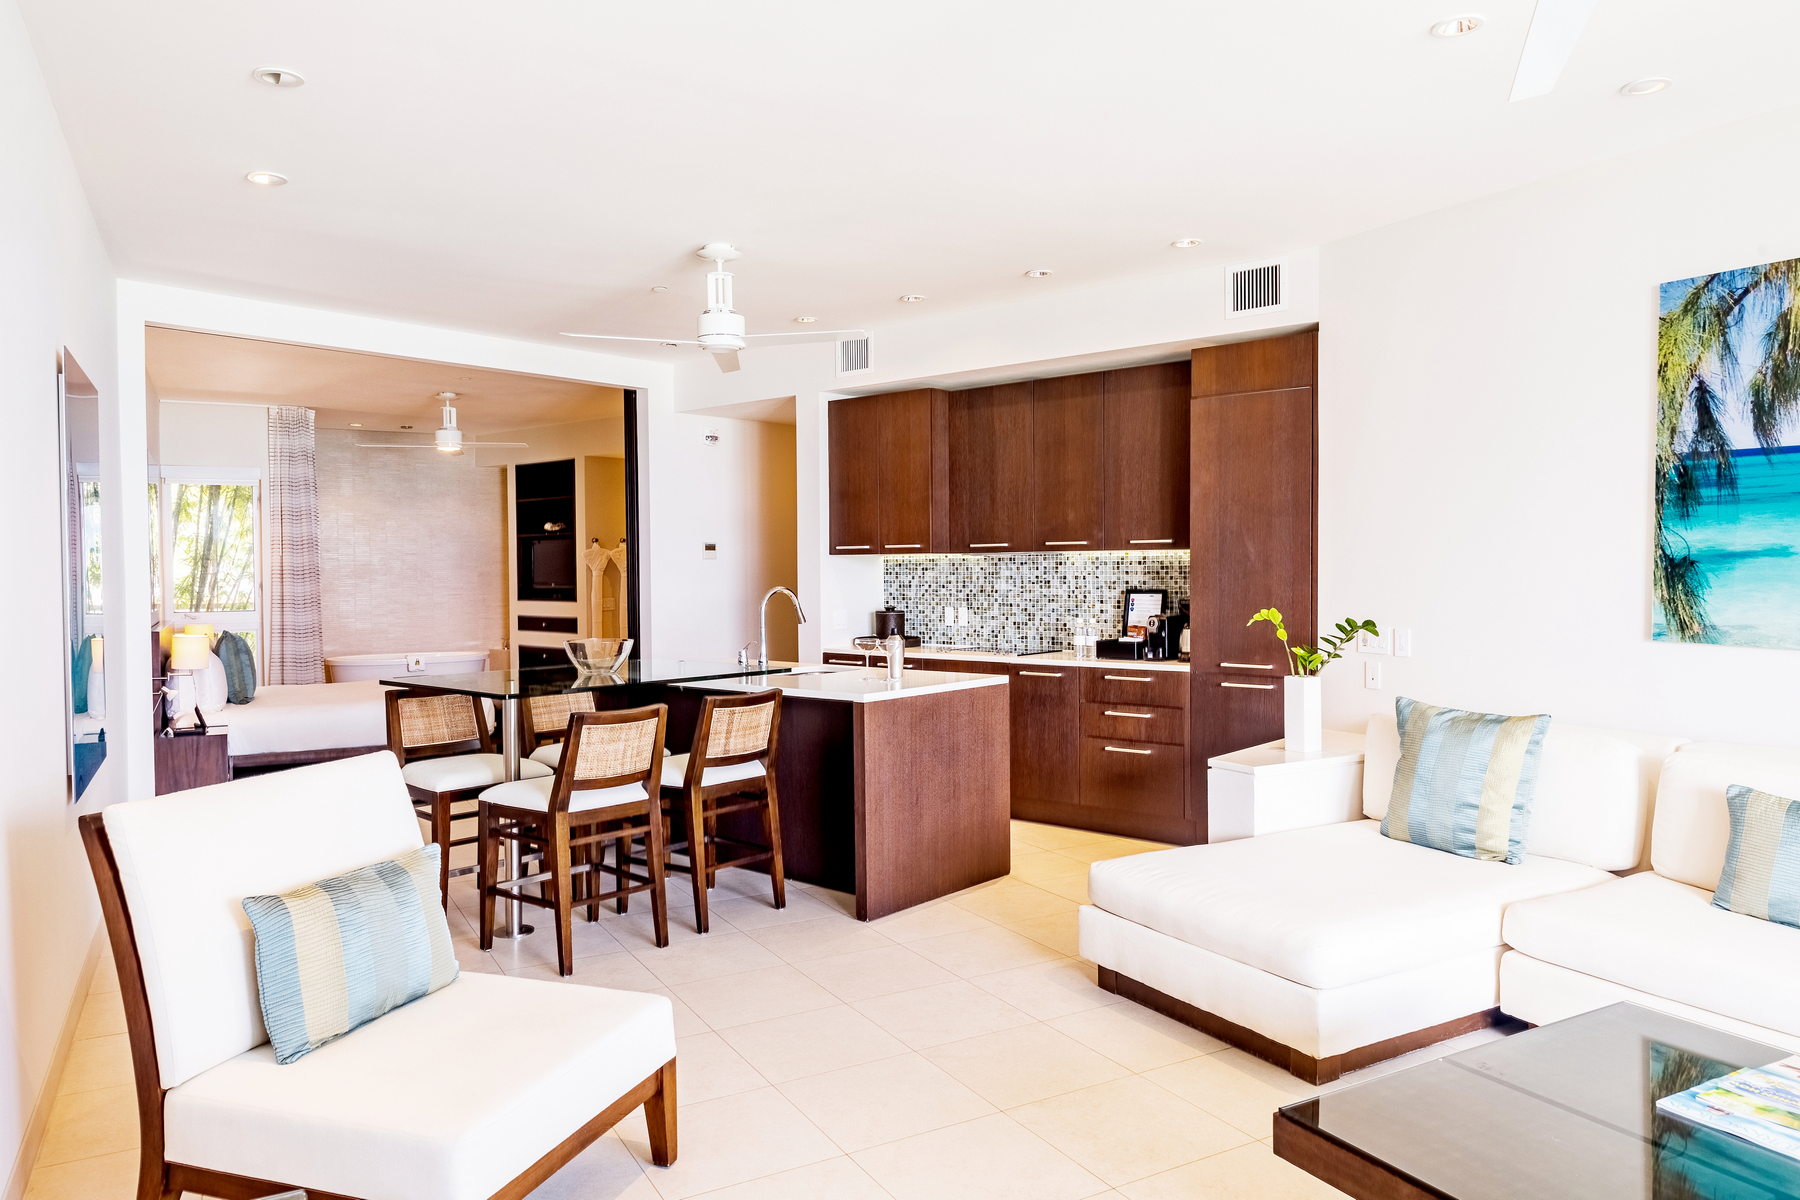 Condominium for Sale at Gansevoort Suite 2206 Beachfront Grace Bay, Providenciales TCI BWI Turks And Caicos Islands